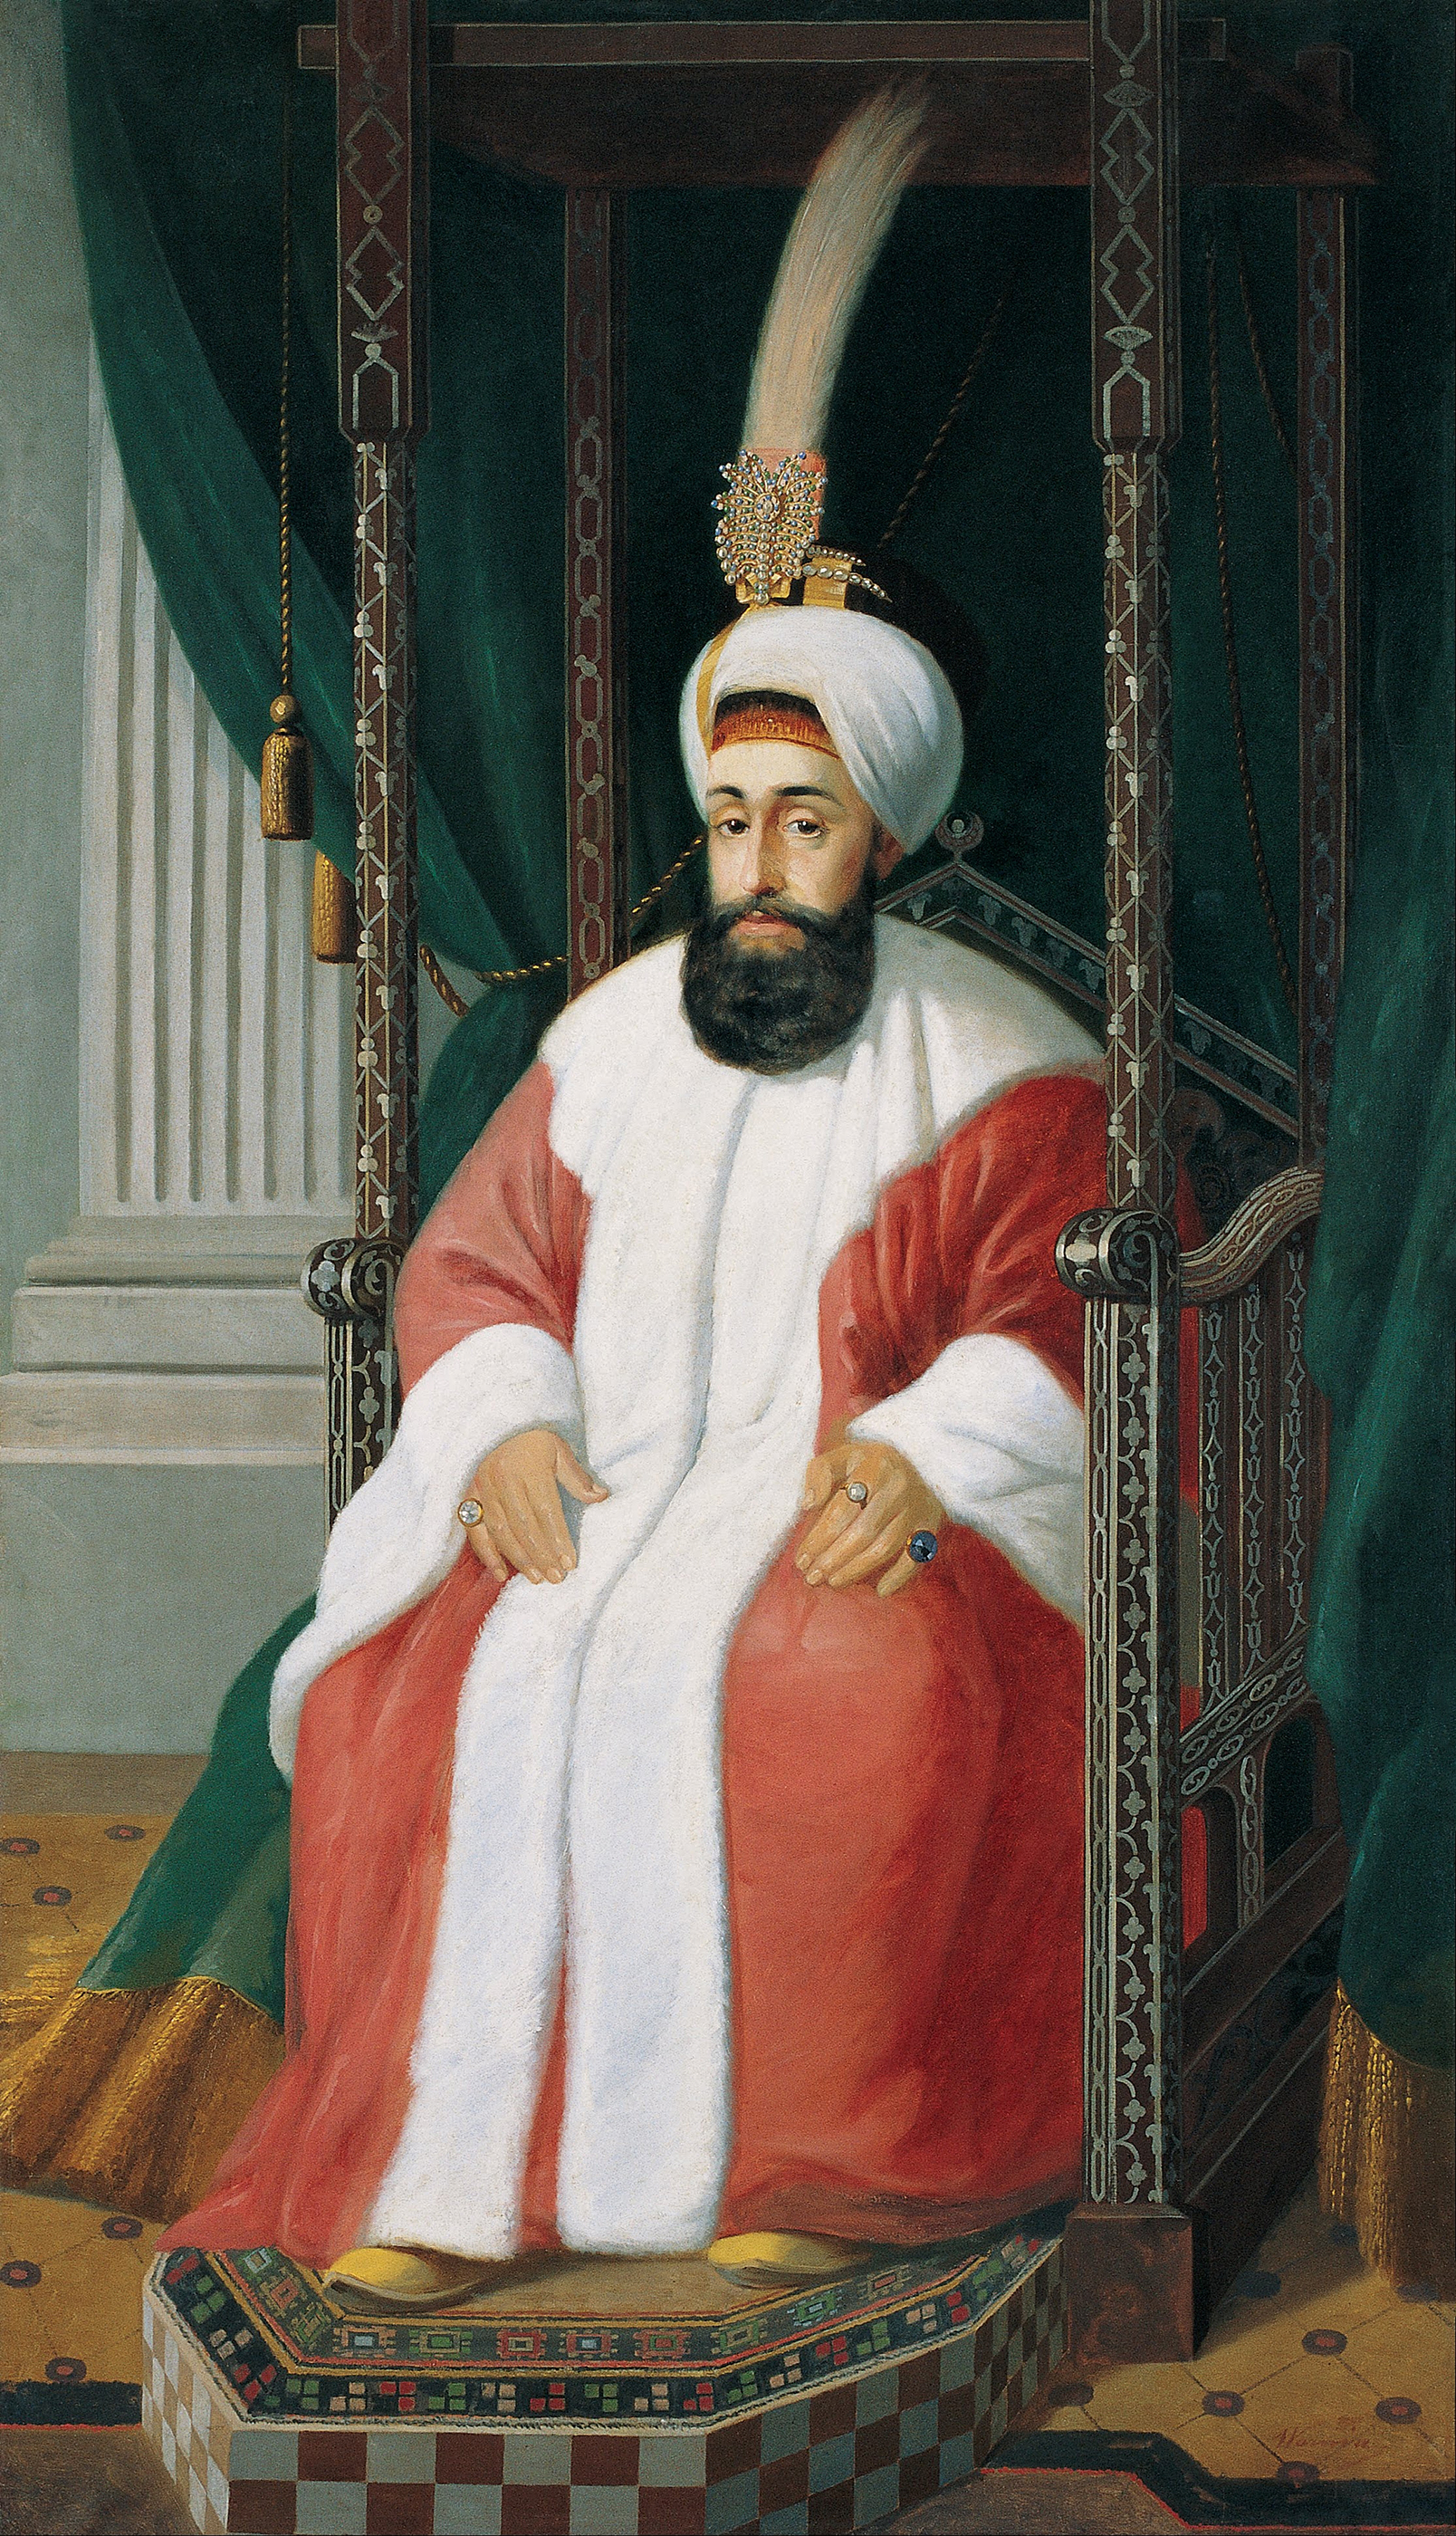 Portrait of Selim III (1761-1808), Sultan of the Ottoman Empire (1789-1807) | Portraits of Kings